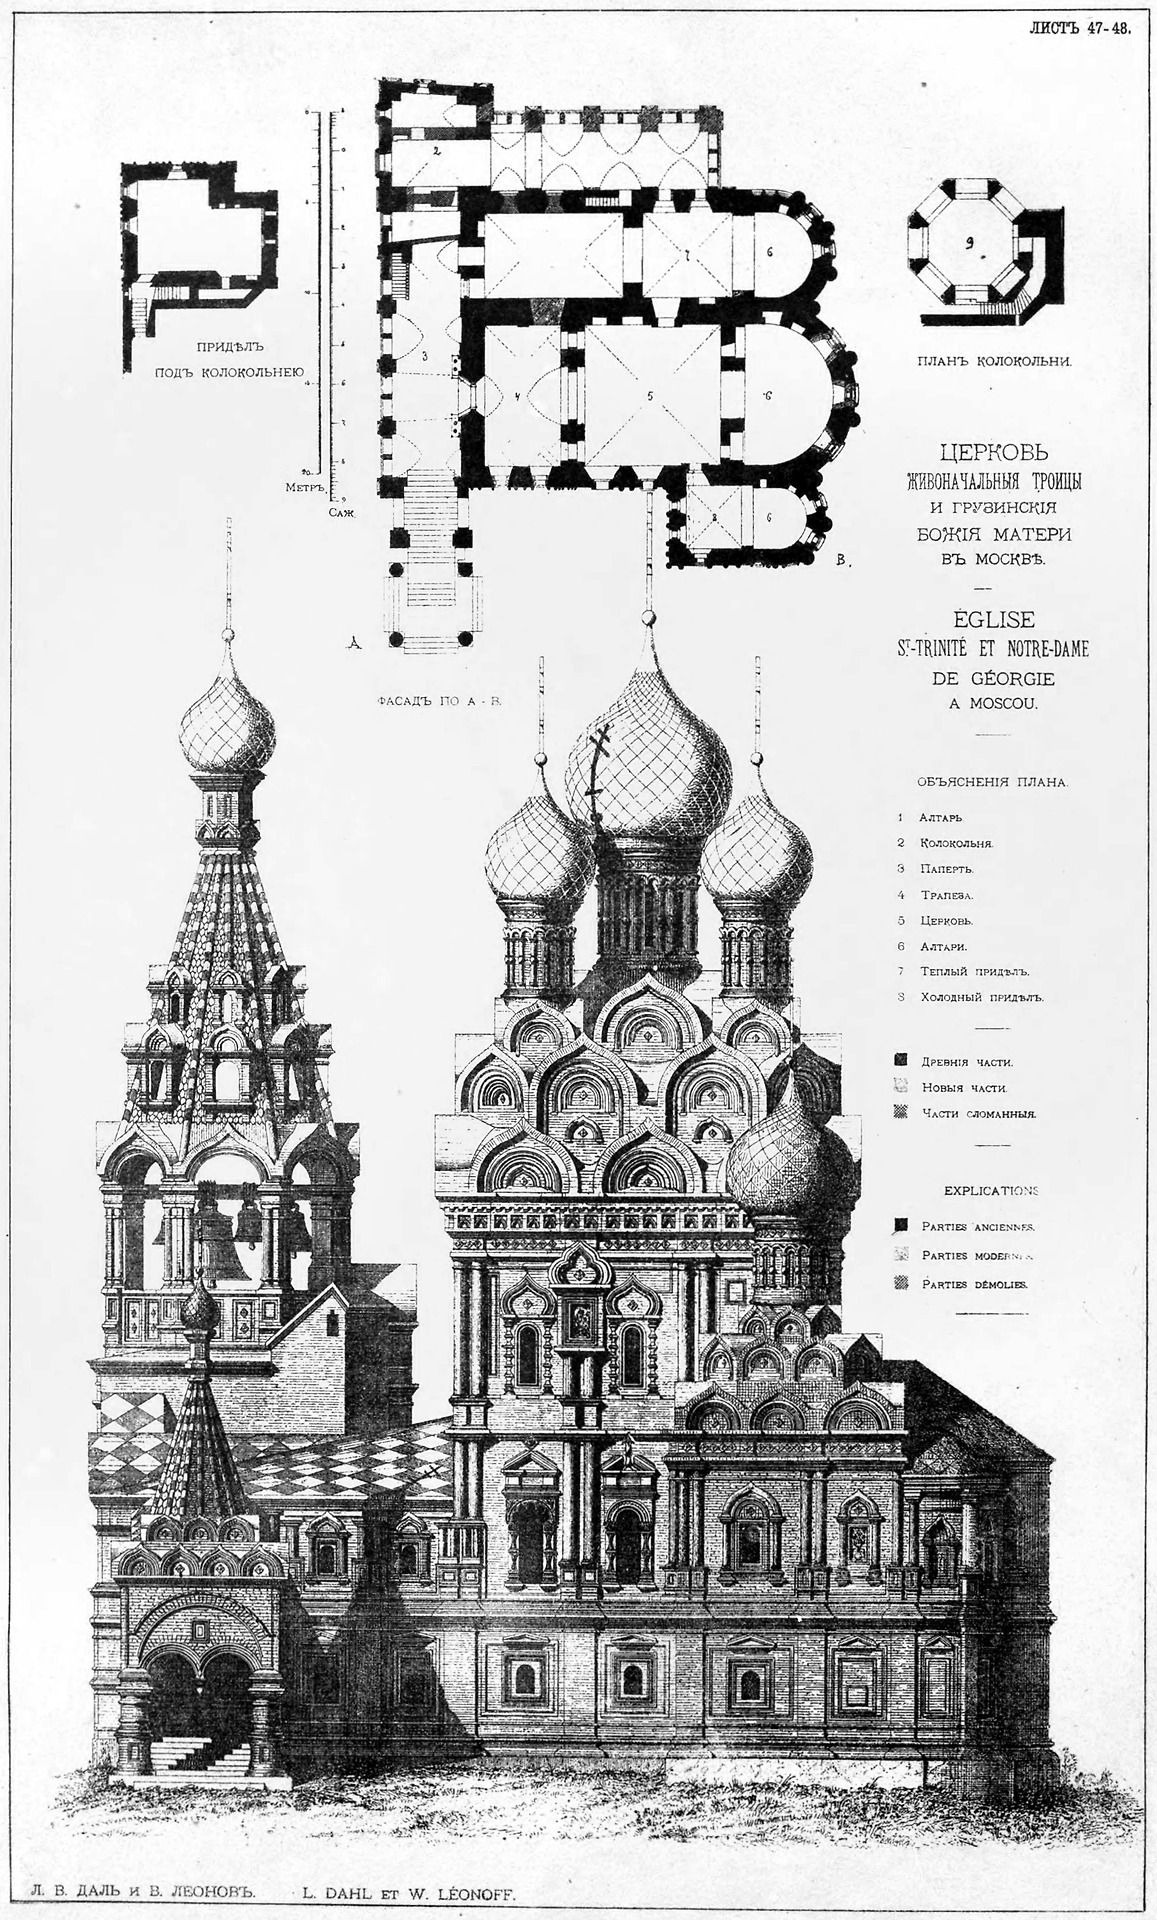 Plan and elevation of the Church of the Trinity and Our